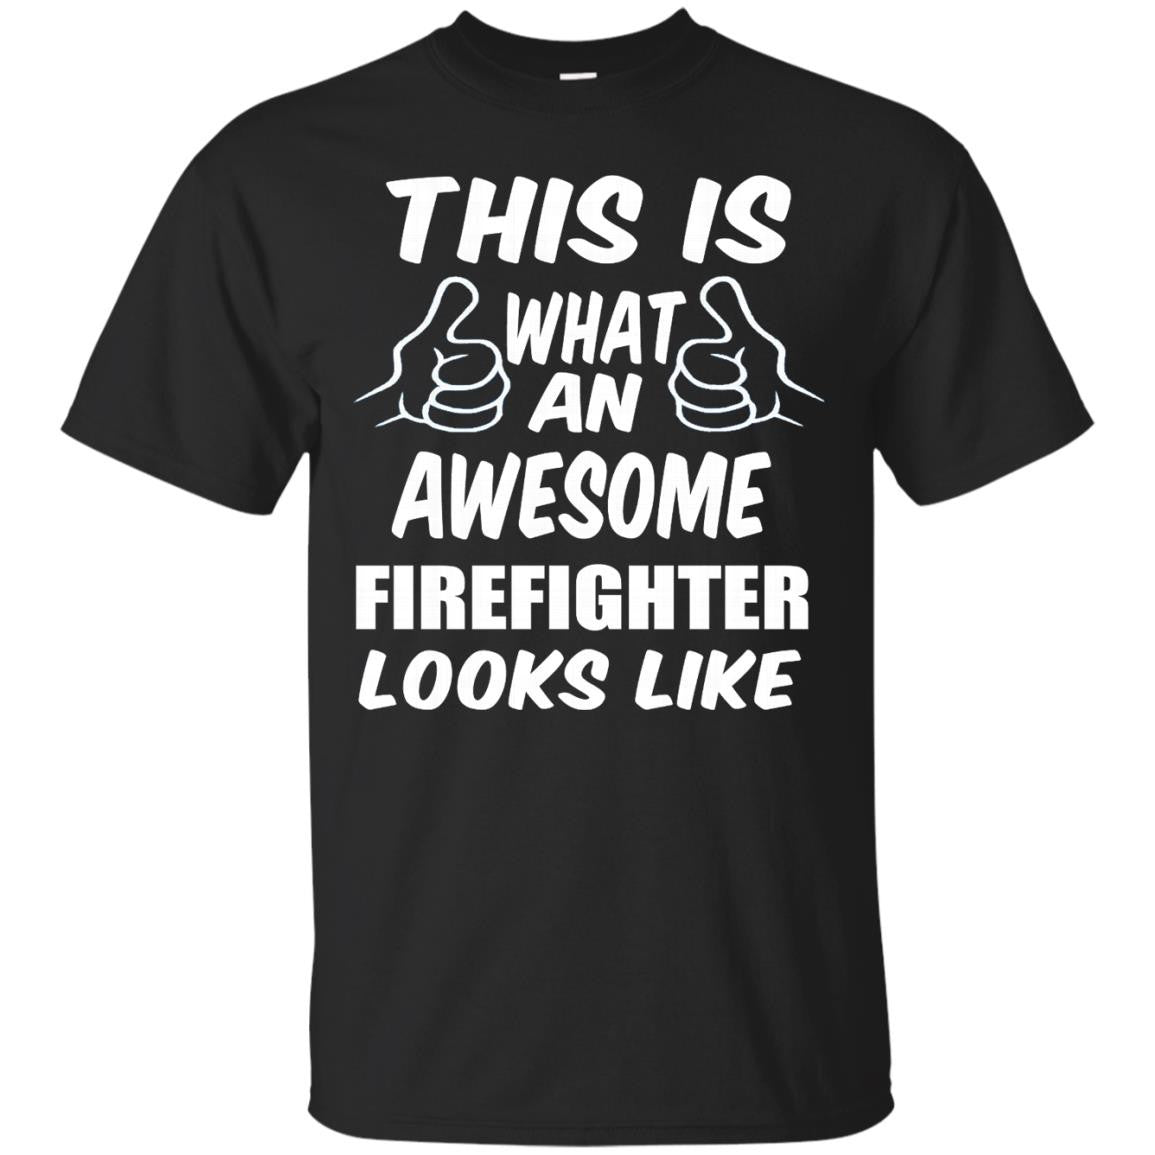 This is What an Awesome Firefighter Looks Like T-Shirt